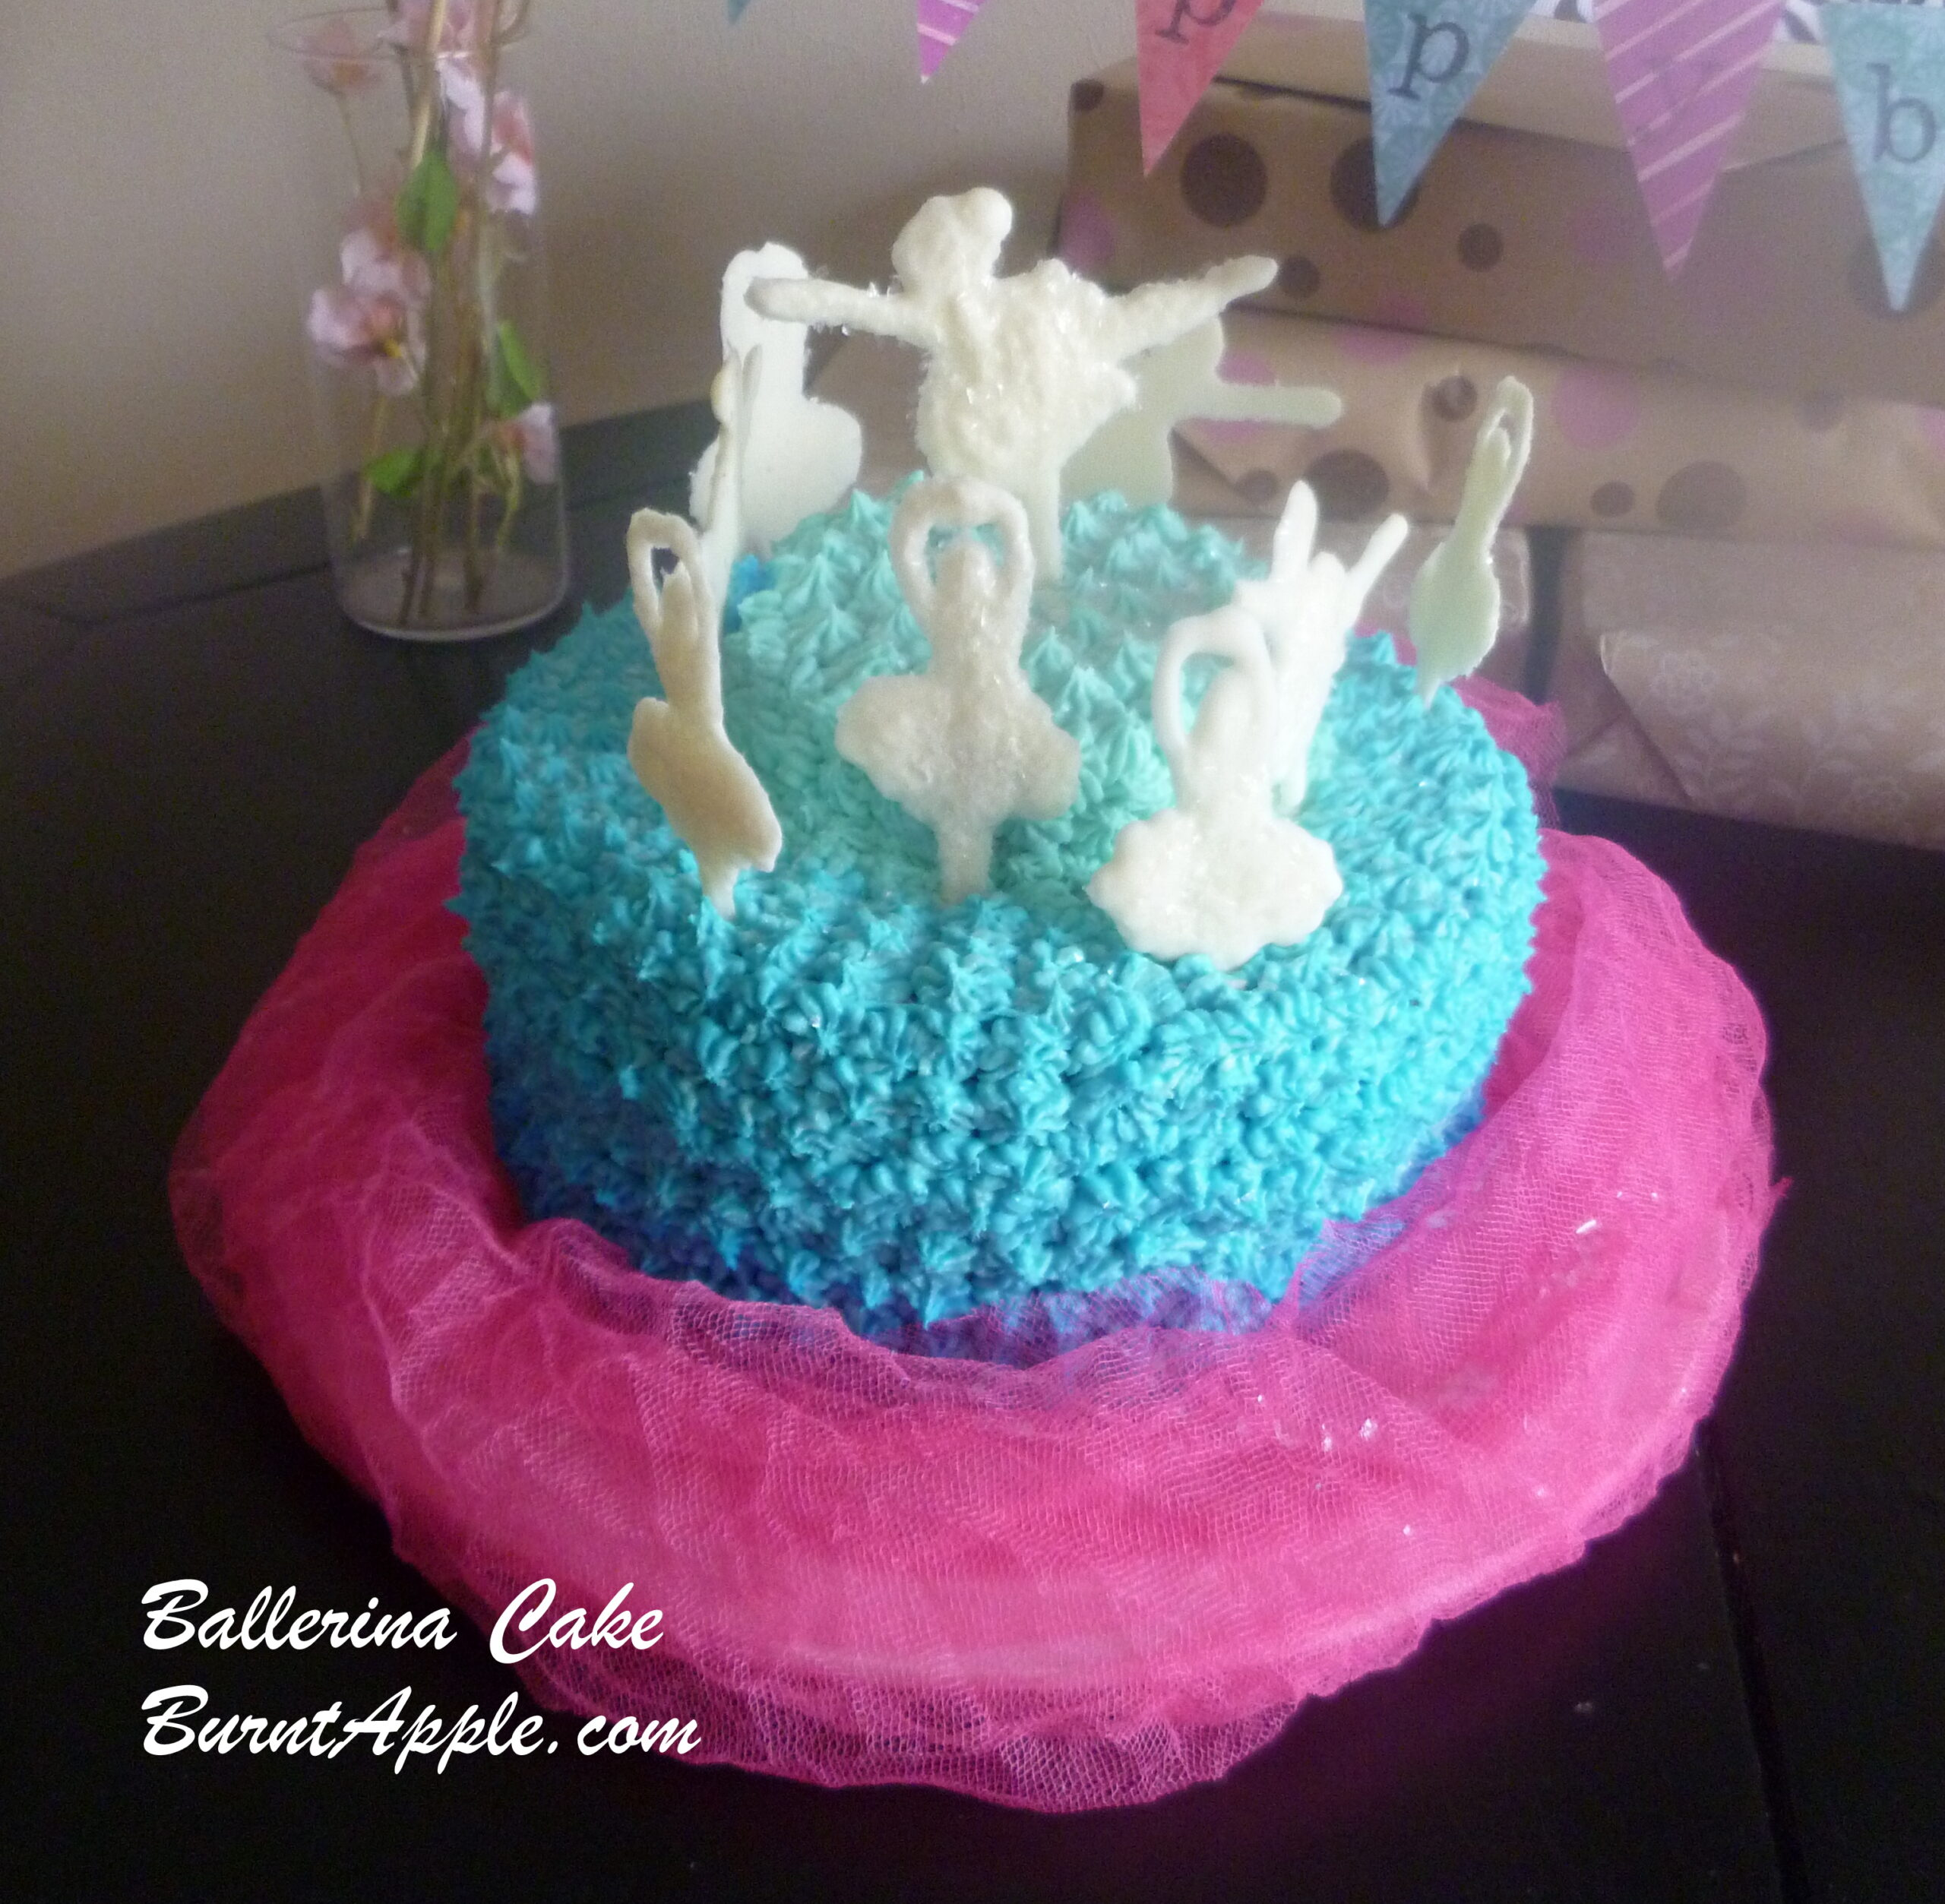 White Chocolate Ballerina Cake